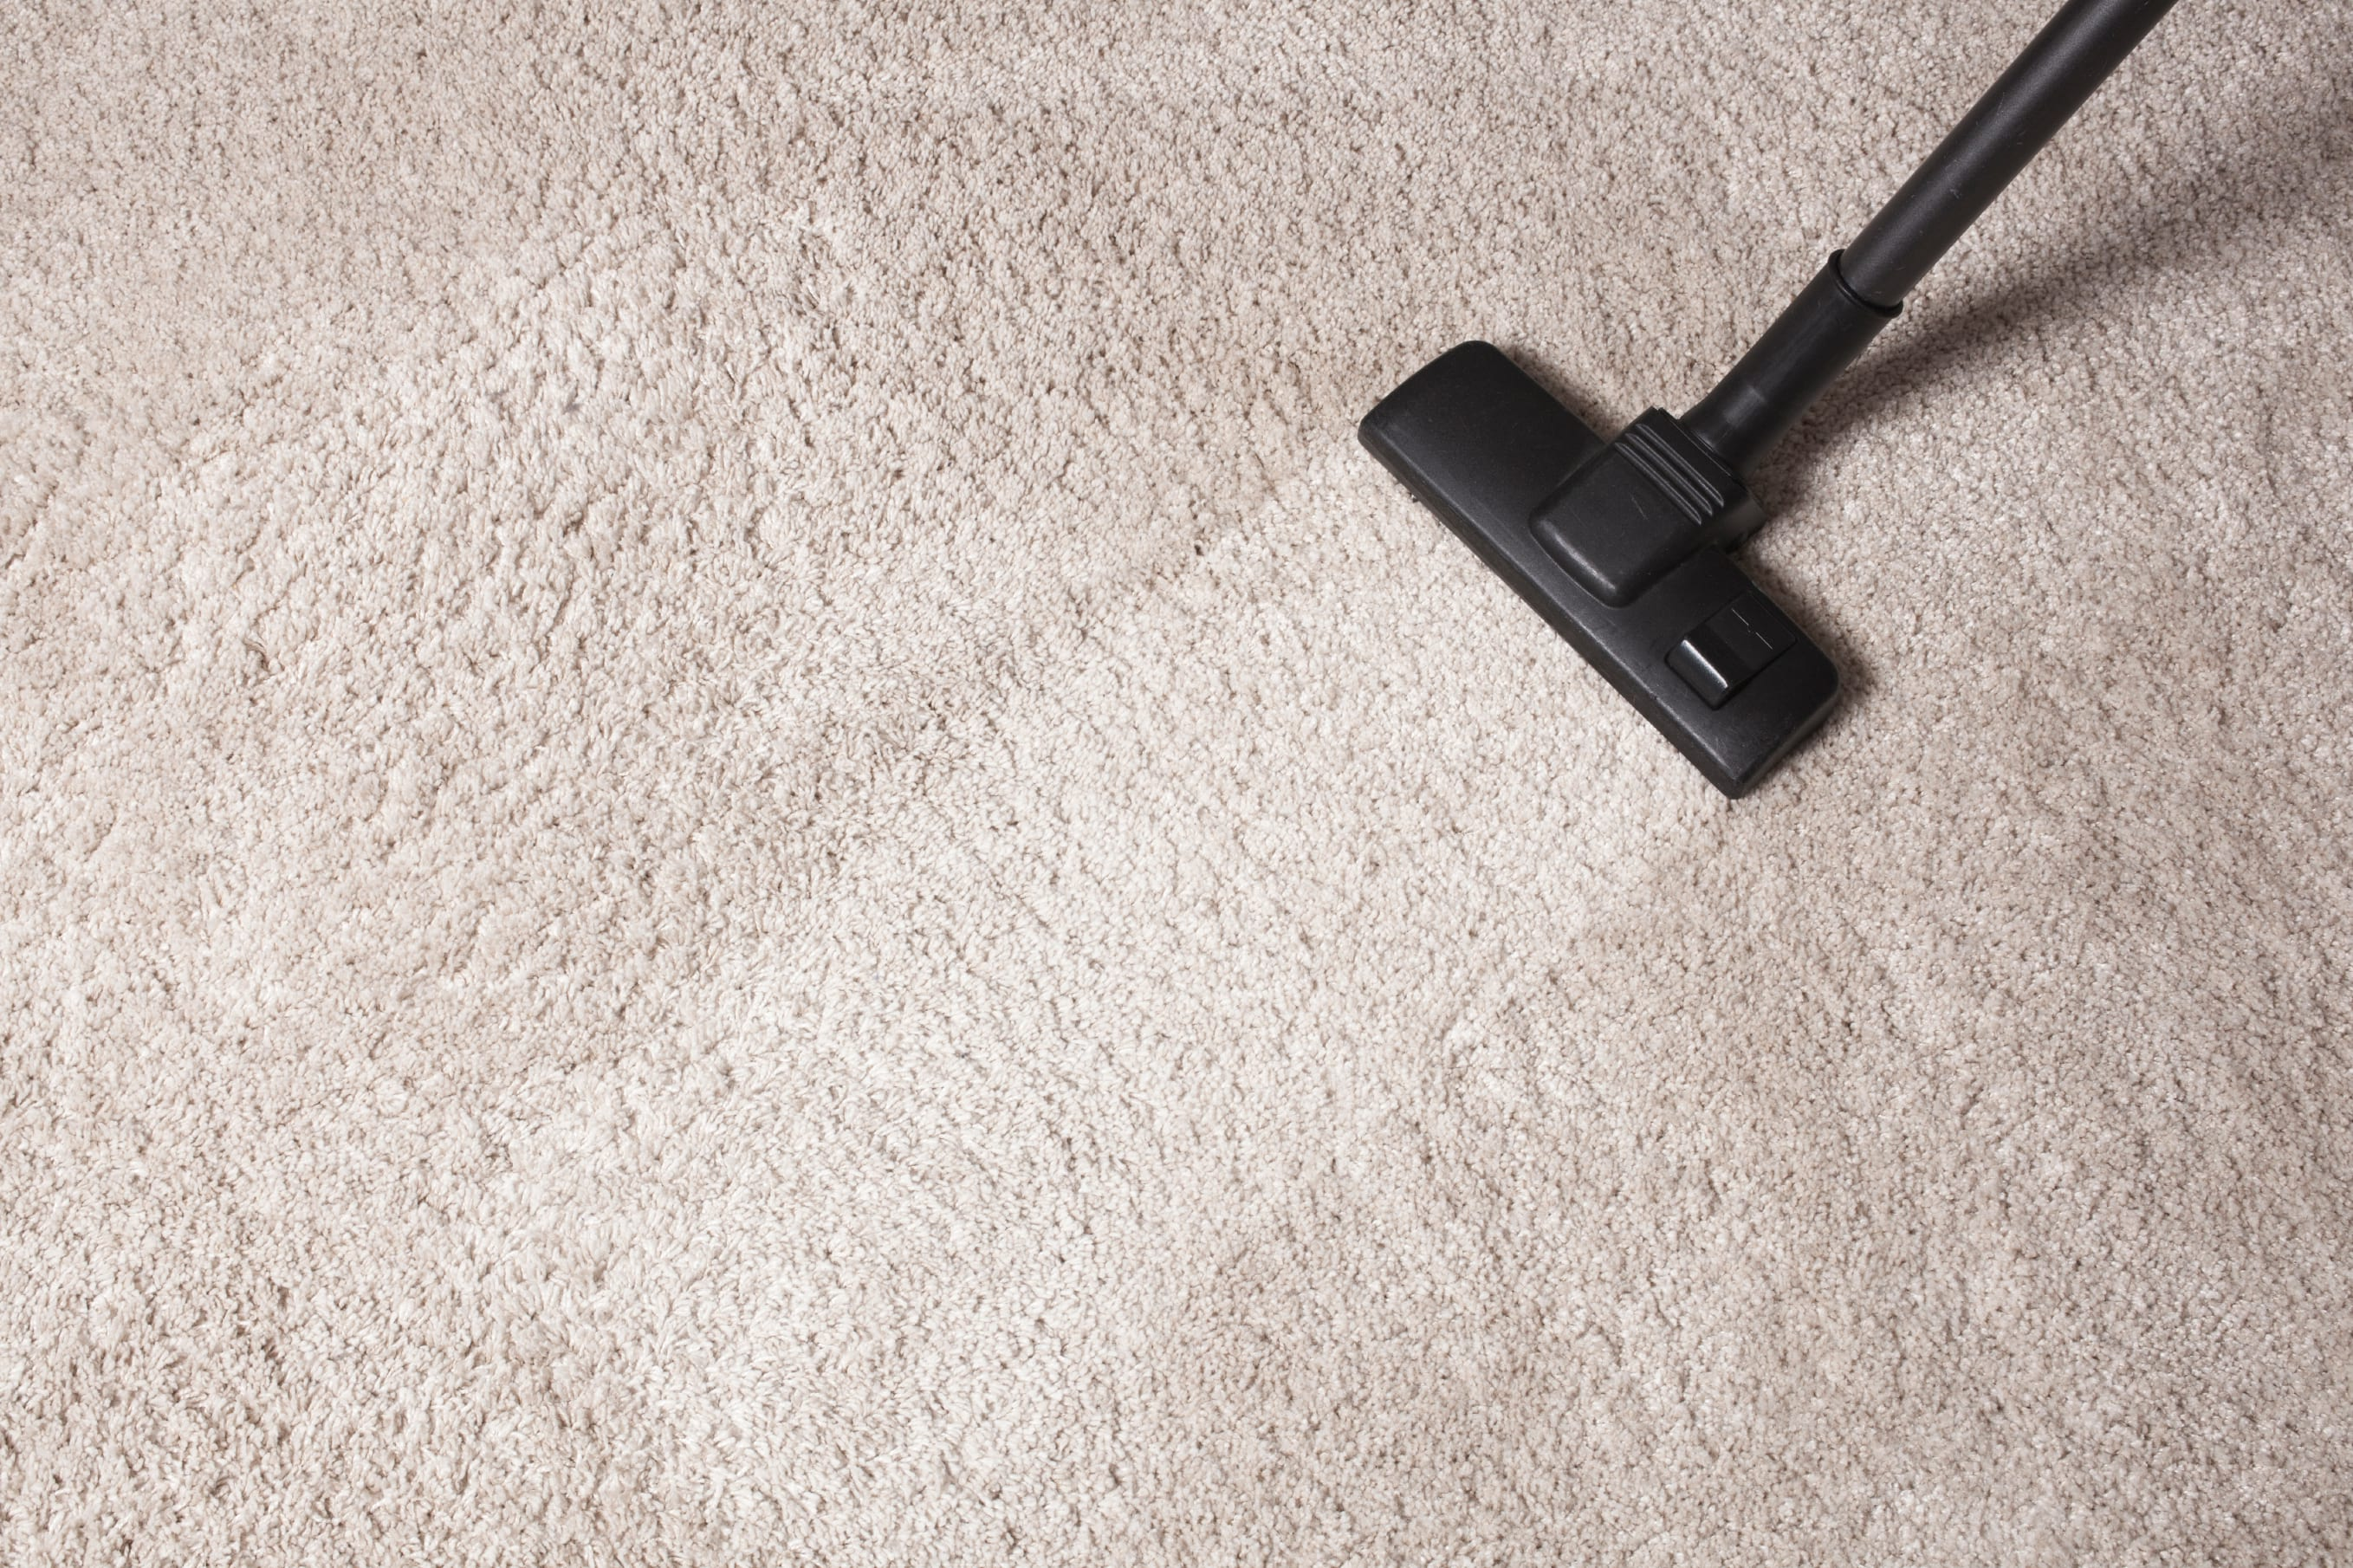 Carpet Cleaning East Orange Nj Pros 973 866 5621 Rug